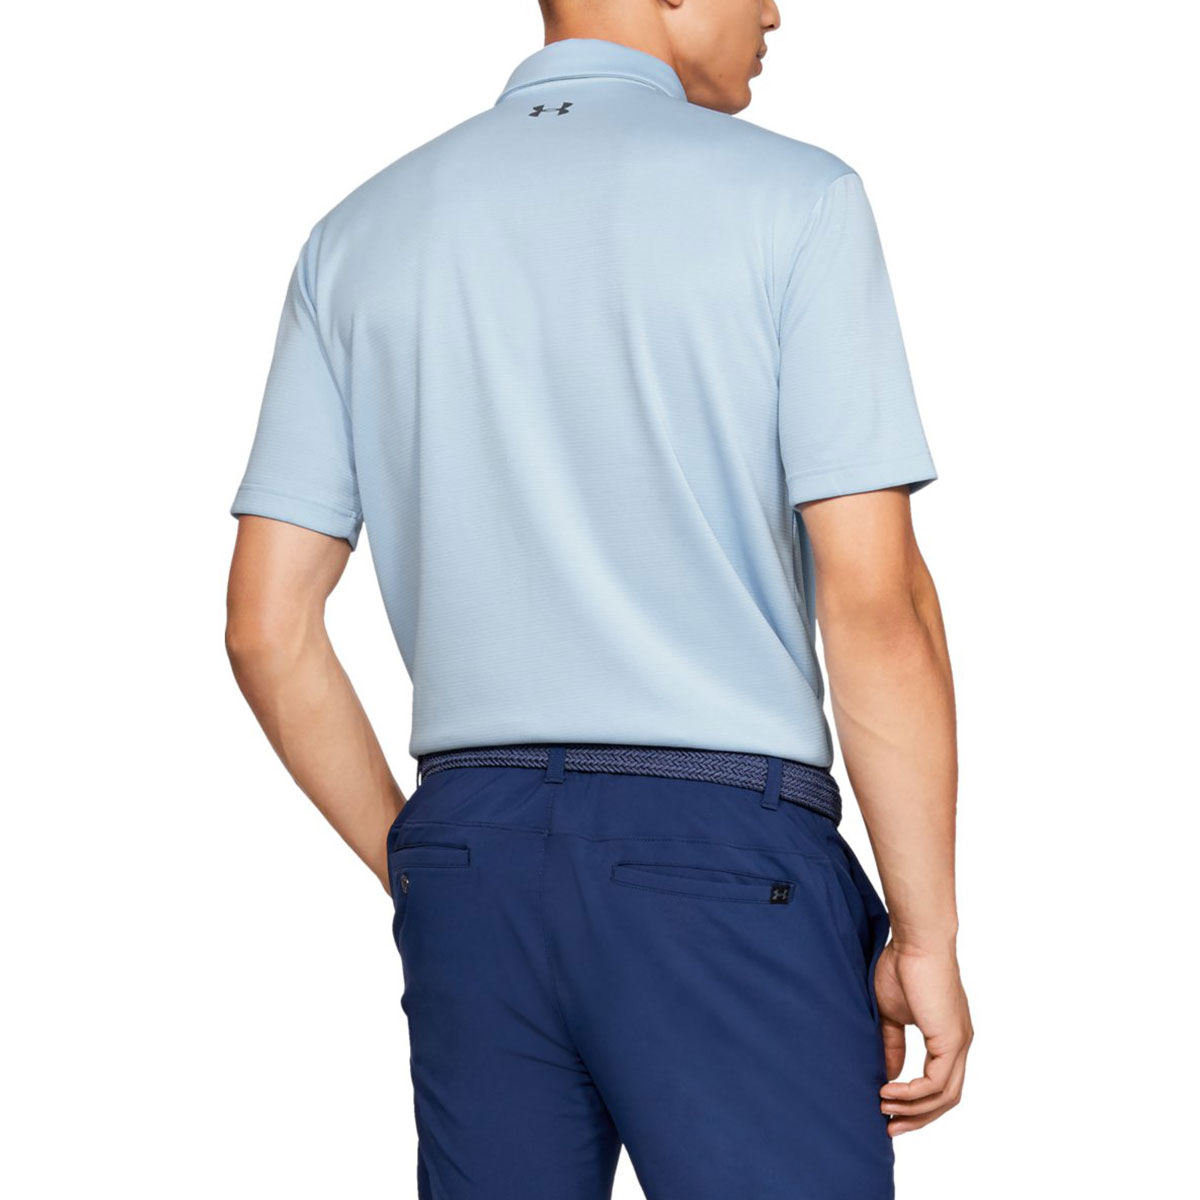 Under-Armour-Mens-2019-Golf-Tech-Wicking-Textured-Soft-Light-Polo-Shirt thumbnail 25